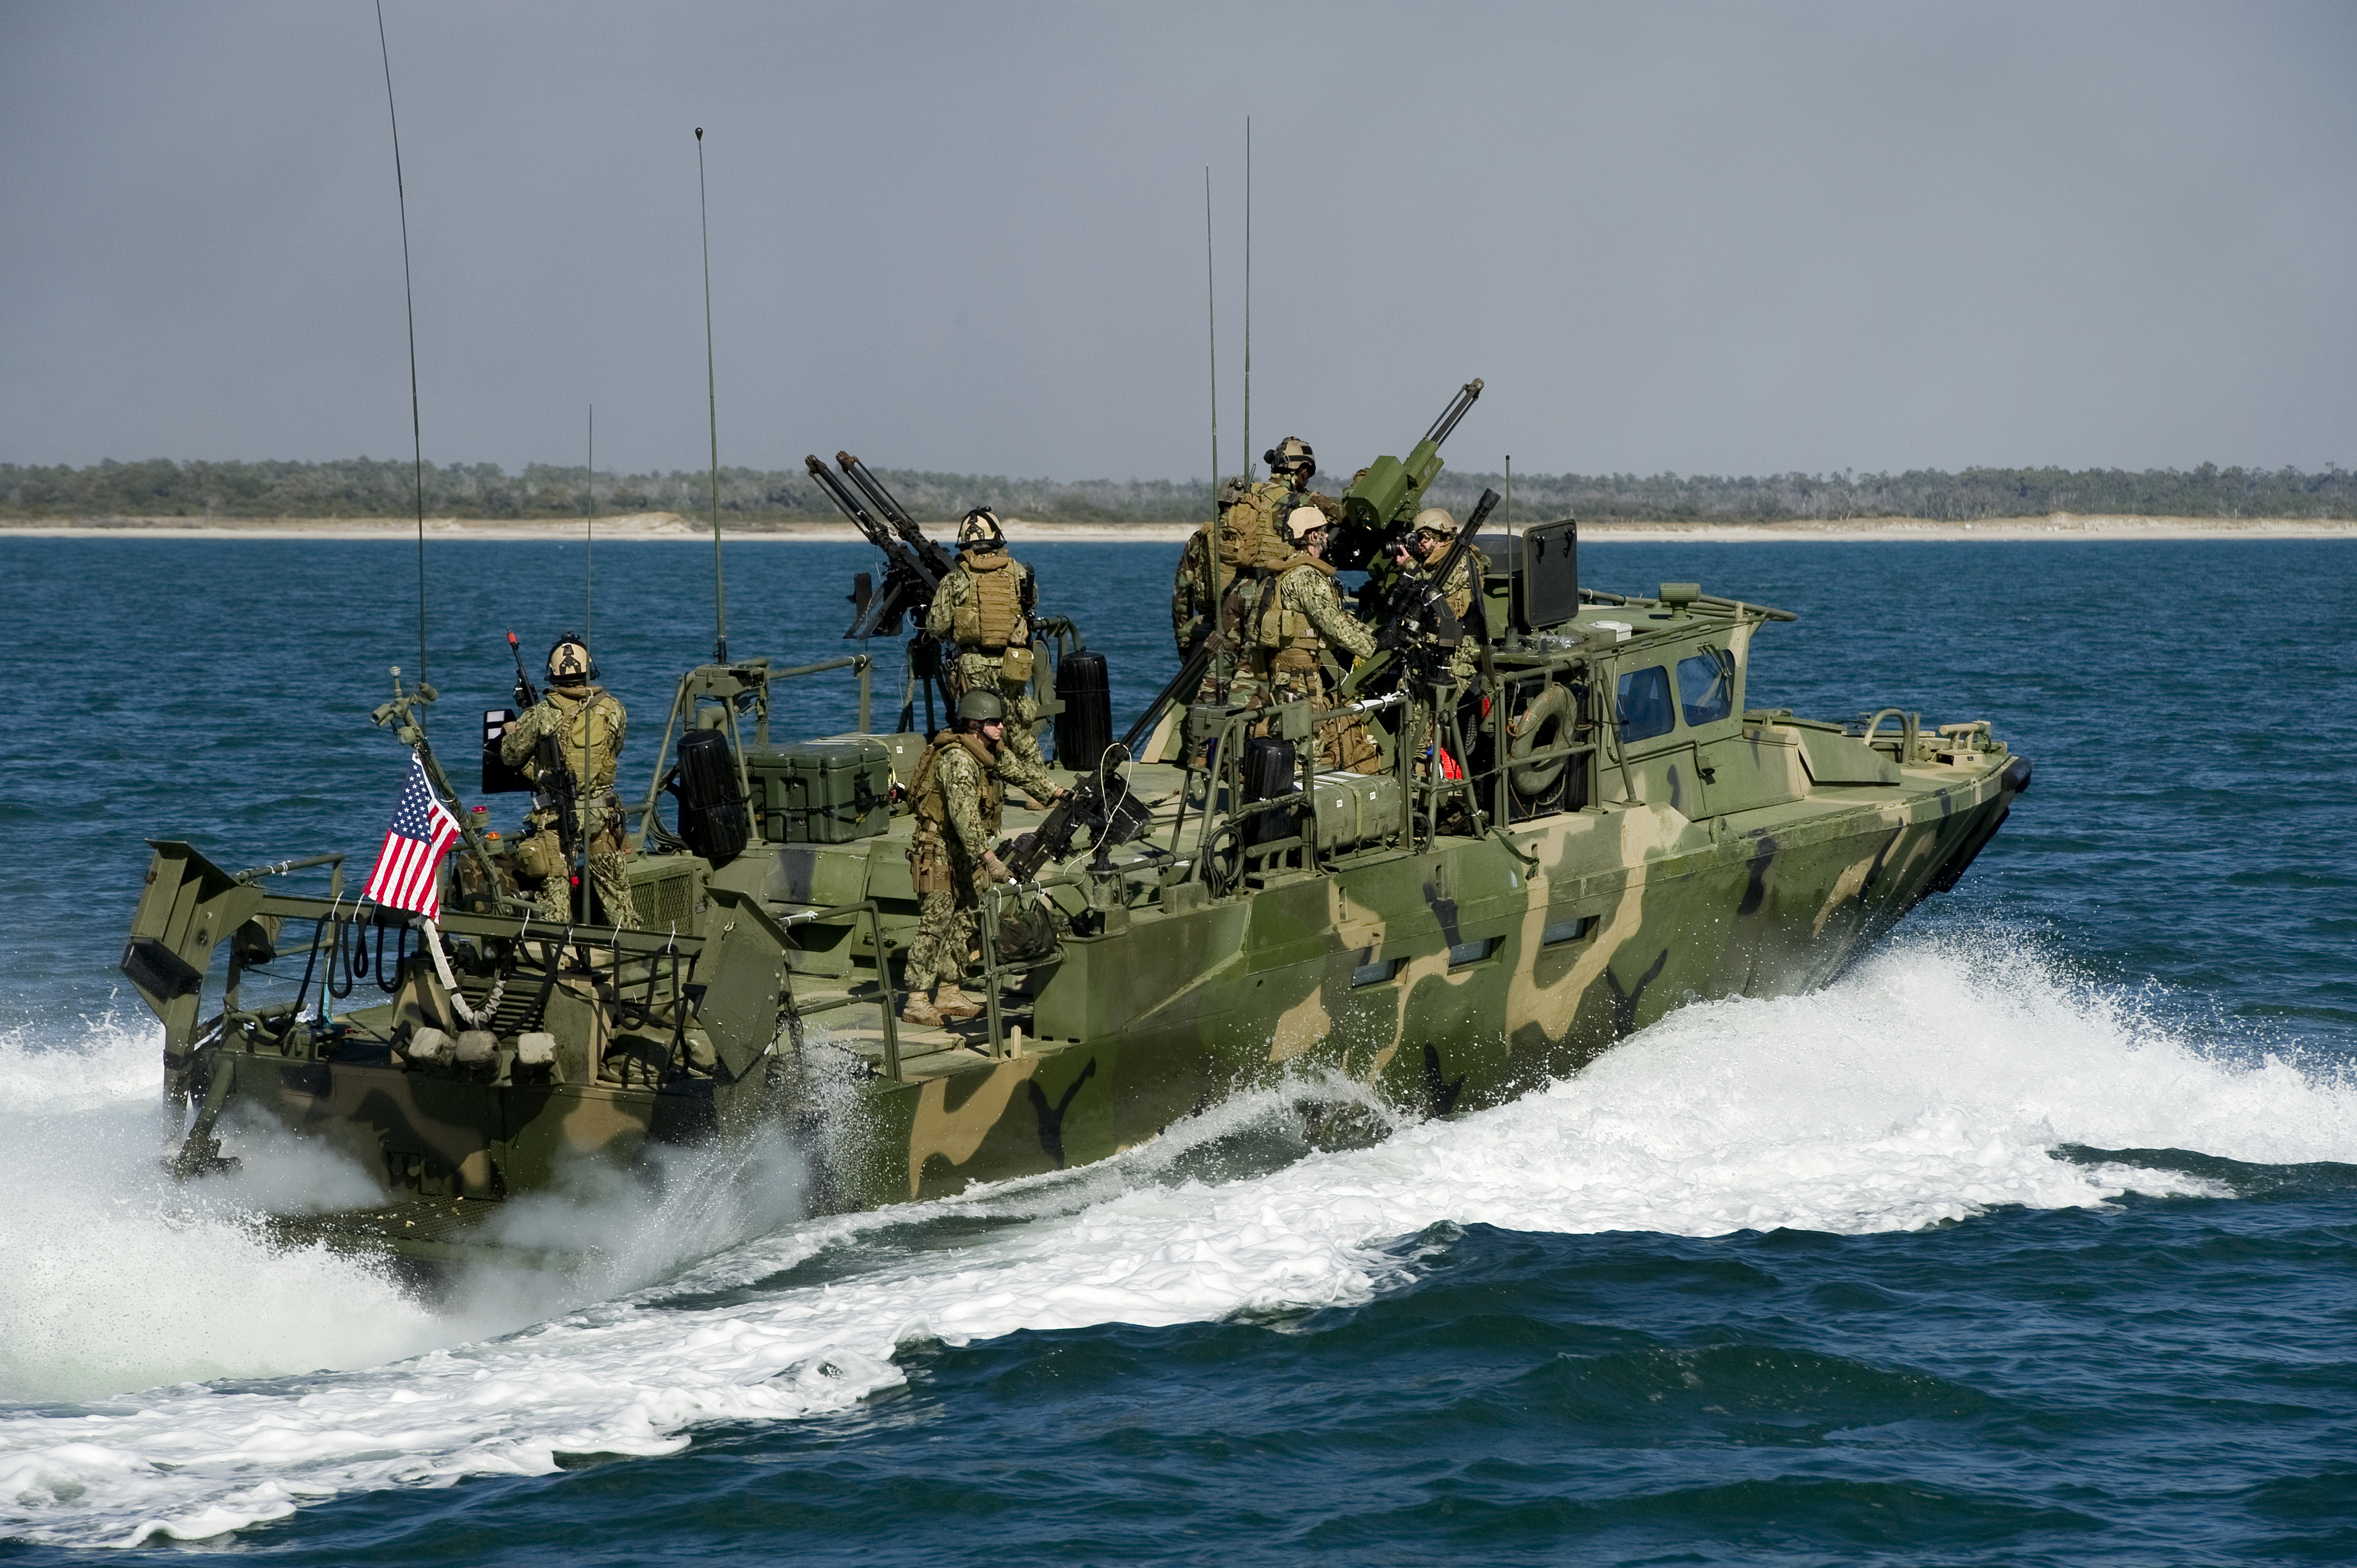 File:Flickr - Official U.S. Navy Imagery - Riverine Command Boat ...